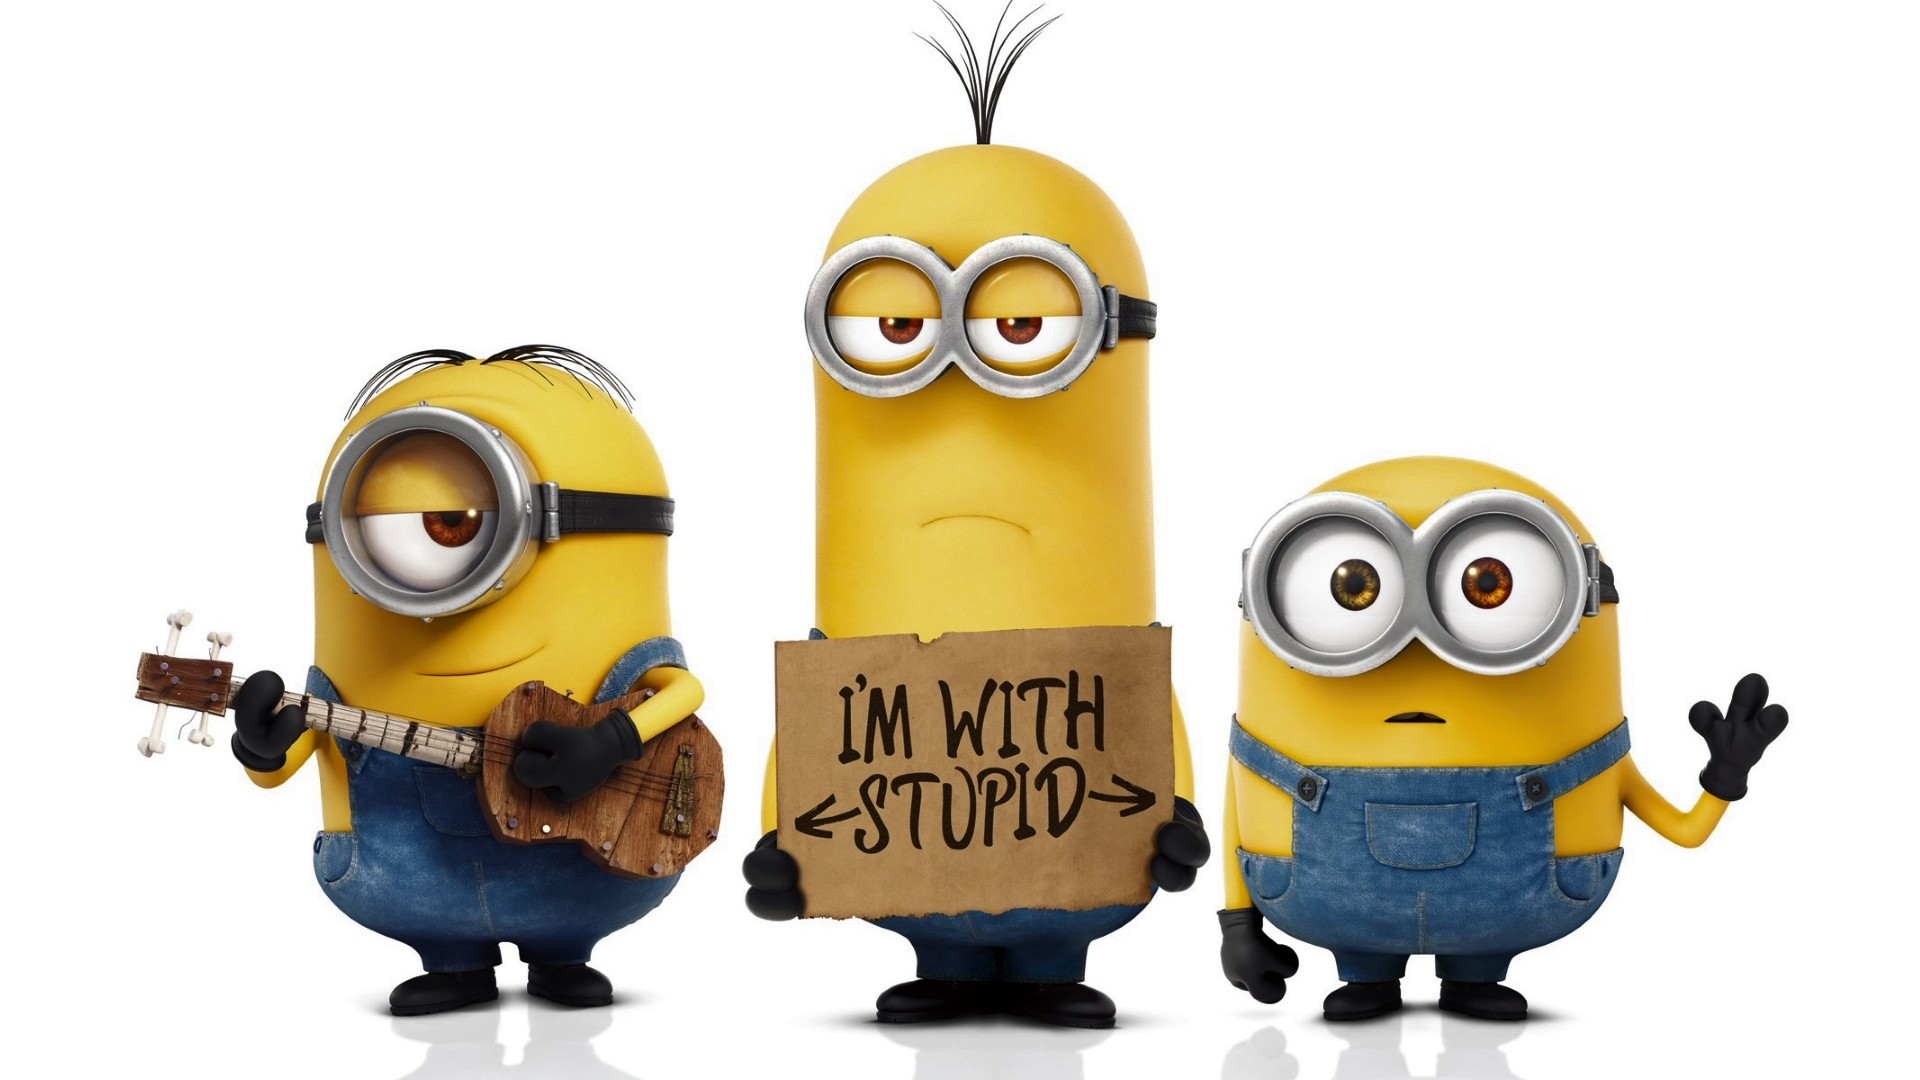 Kevin the minion wallpaper 77 images - Minions funny images ...